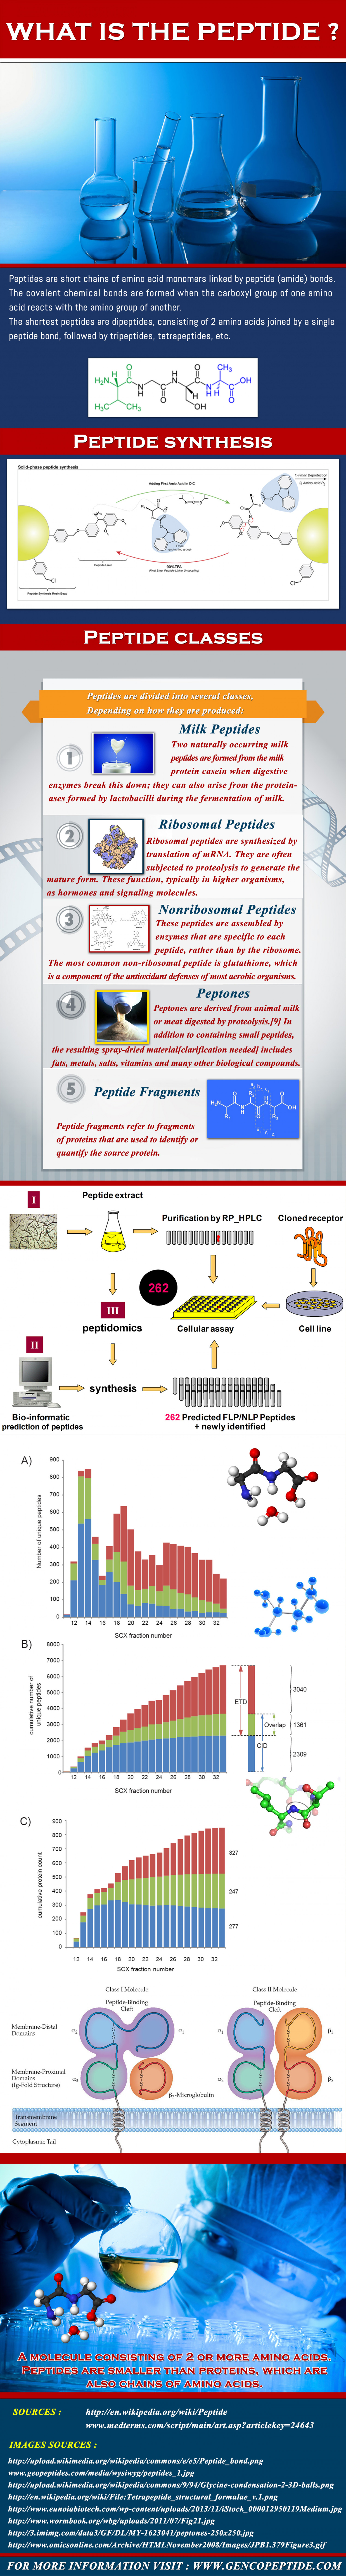 Buy peptides Infographic